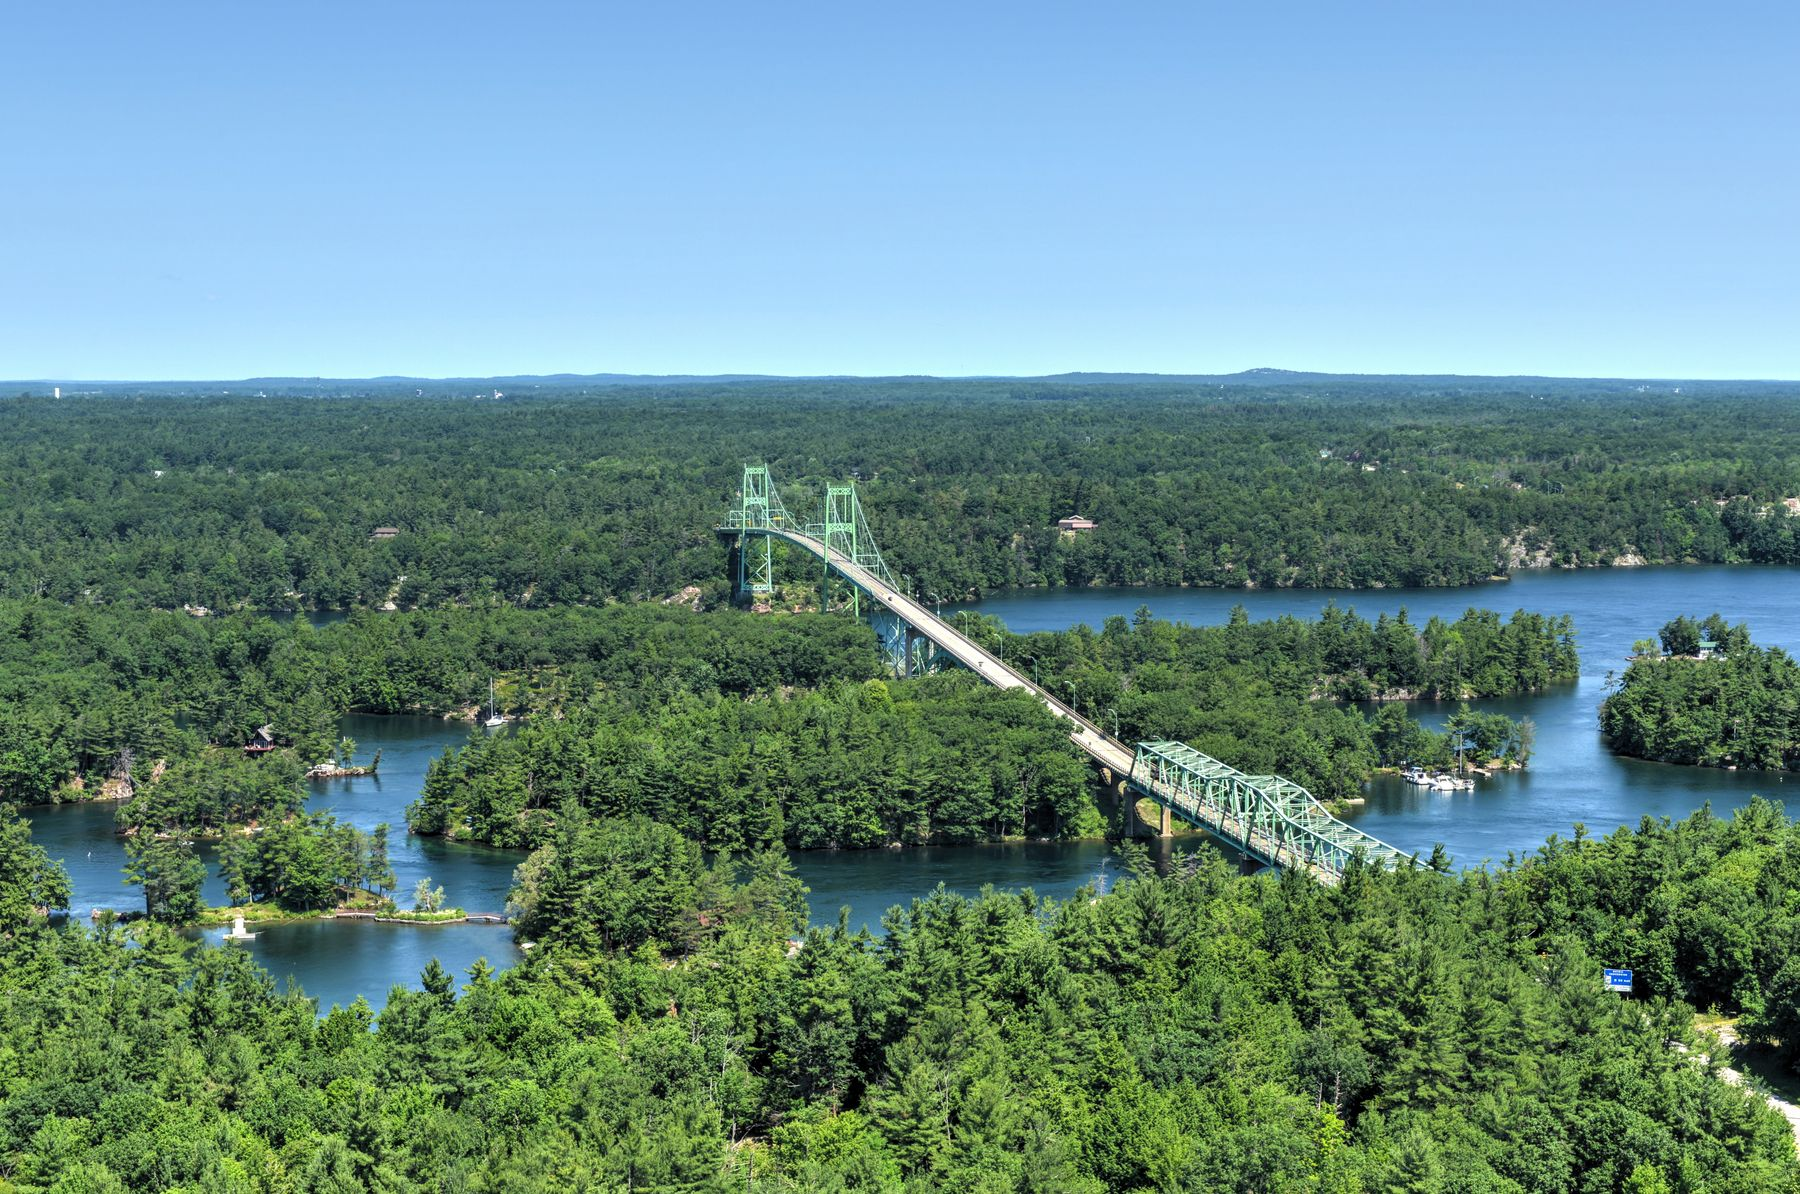 Bridge in Thousand Islands in Ontario during the day